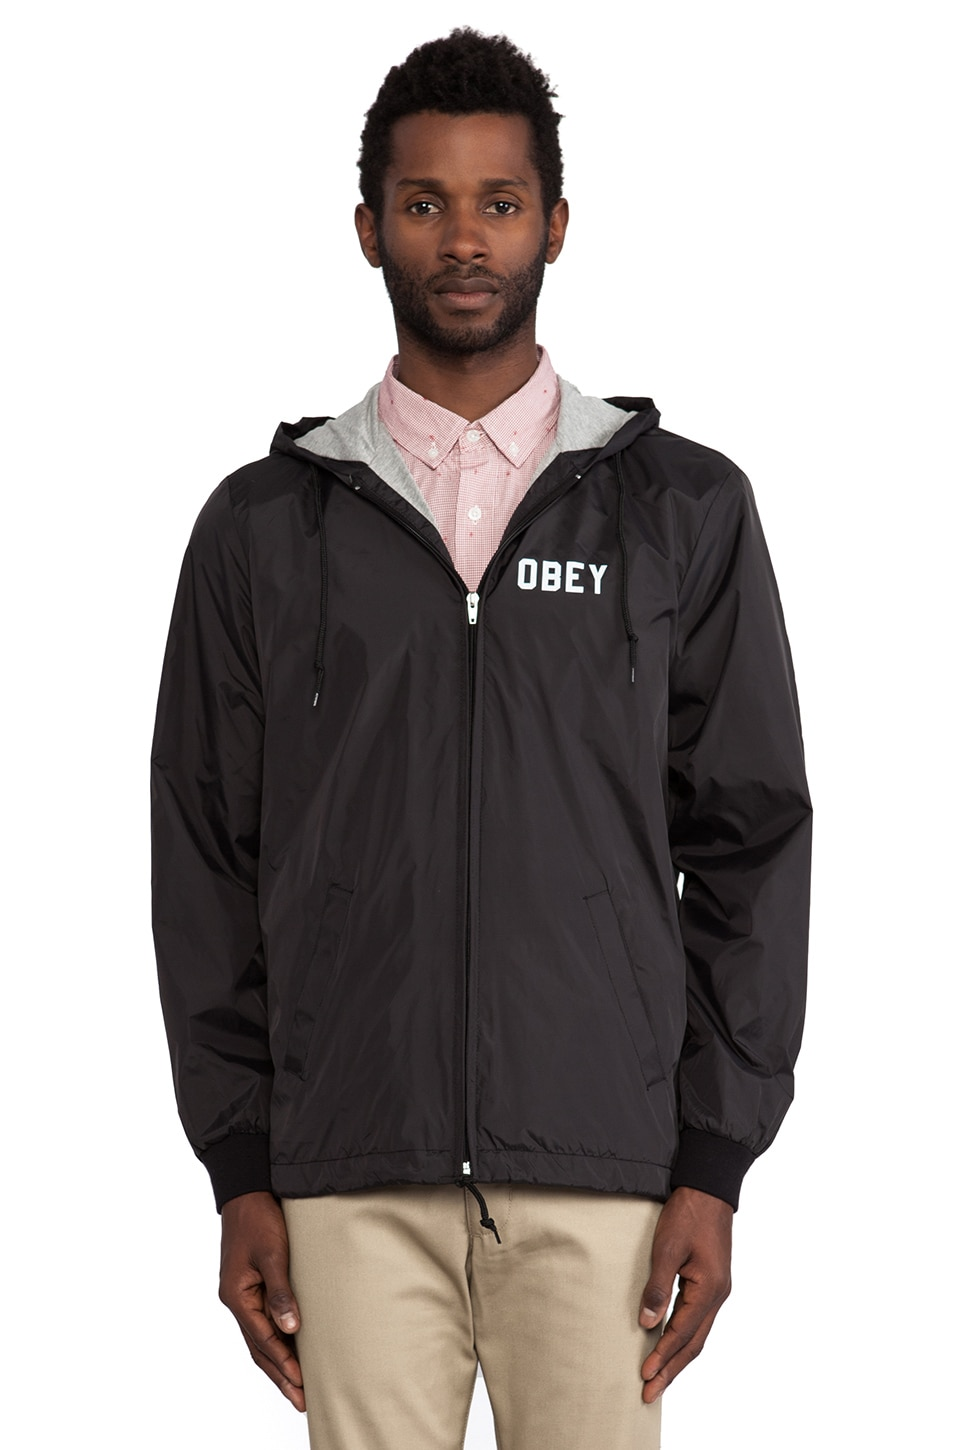 Obey Nation Jacket in Black